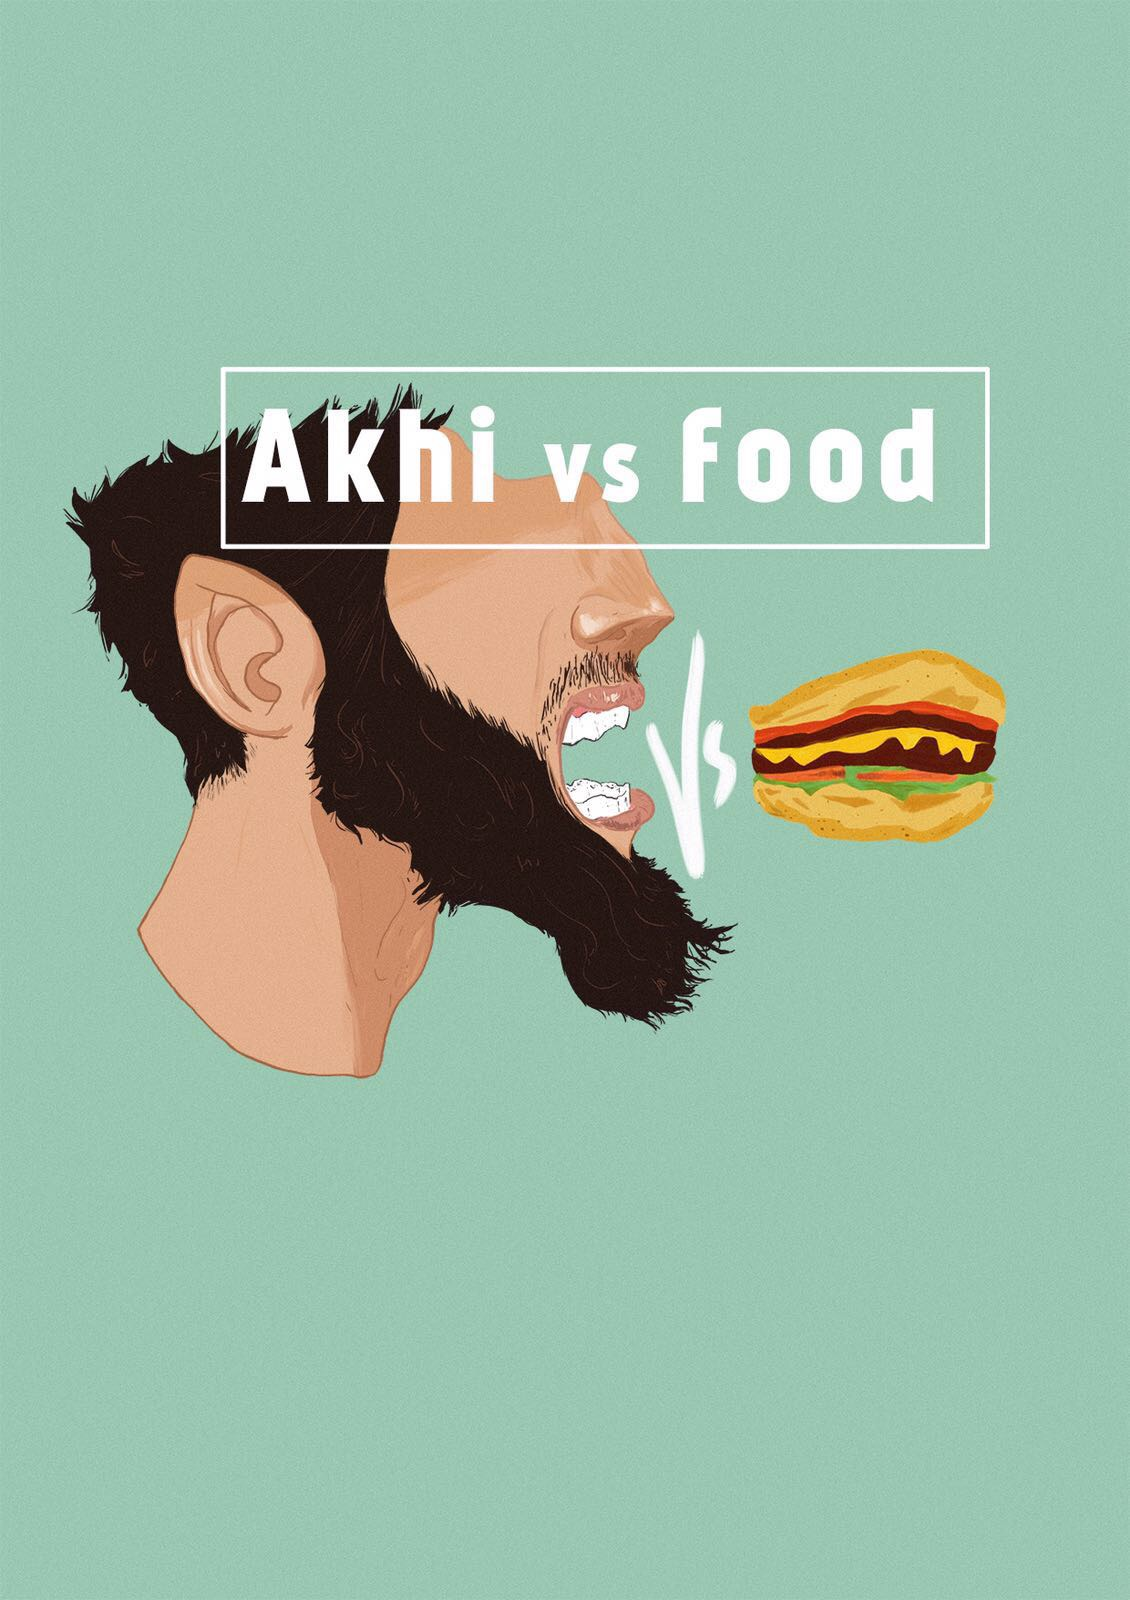 Akhi Vs Food Logo